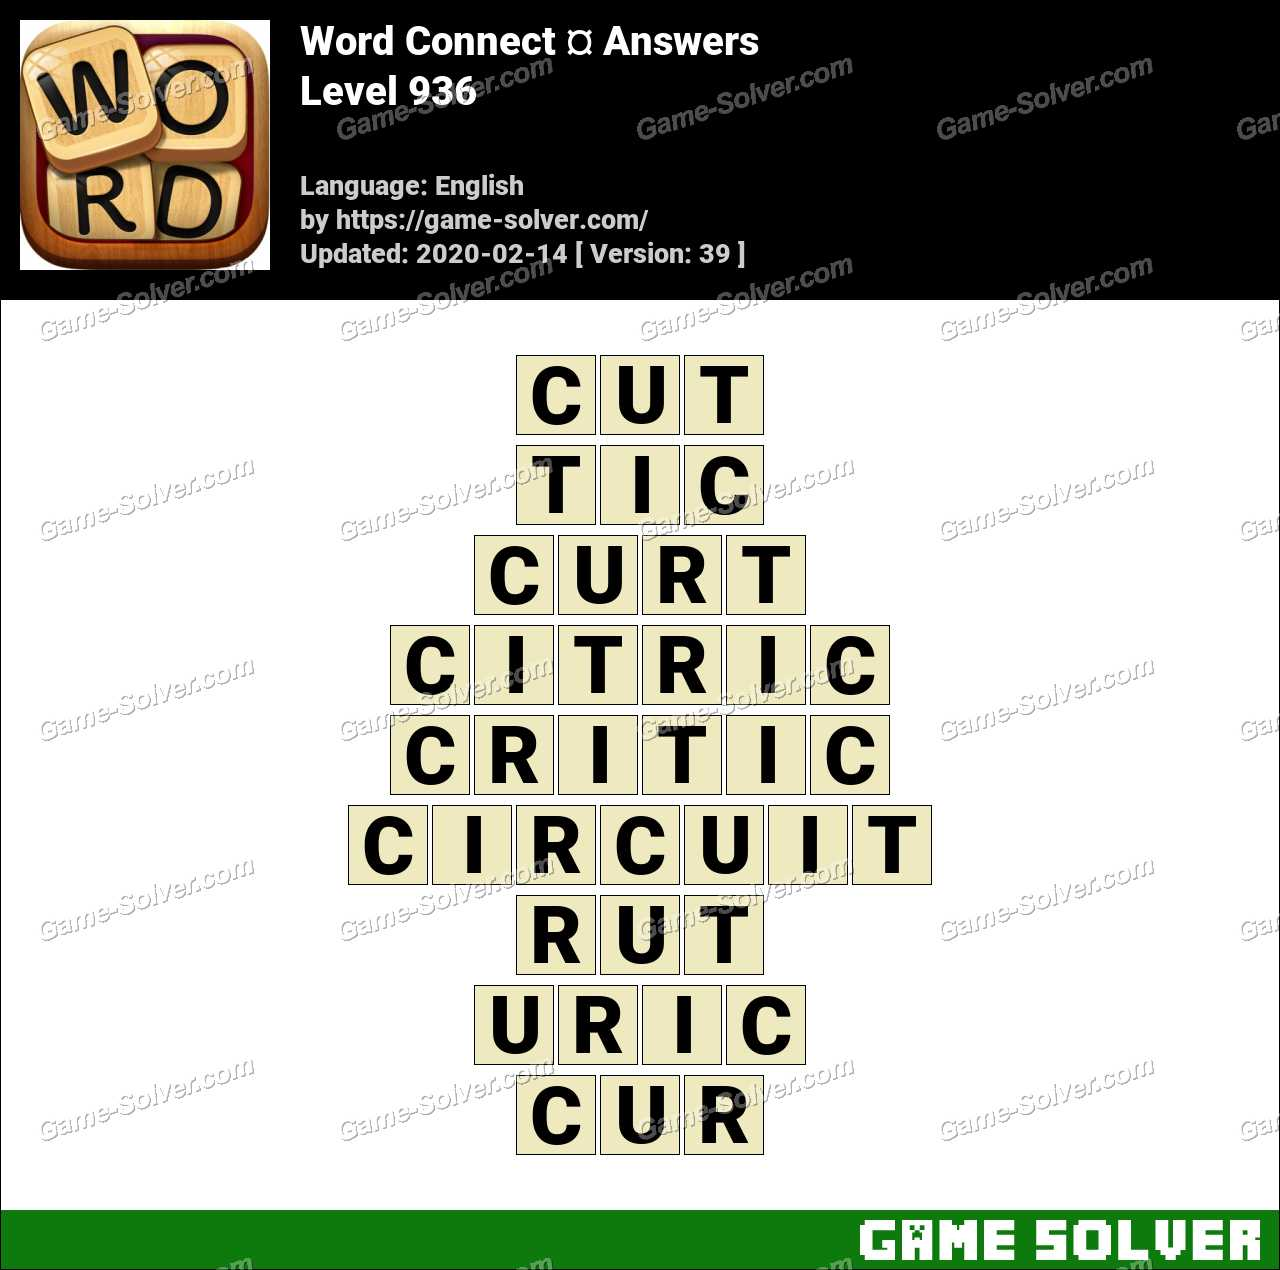 Word Connect Level 936 Answers